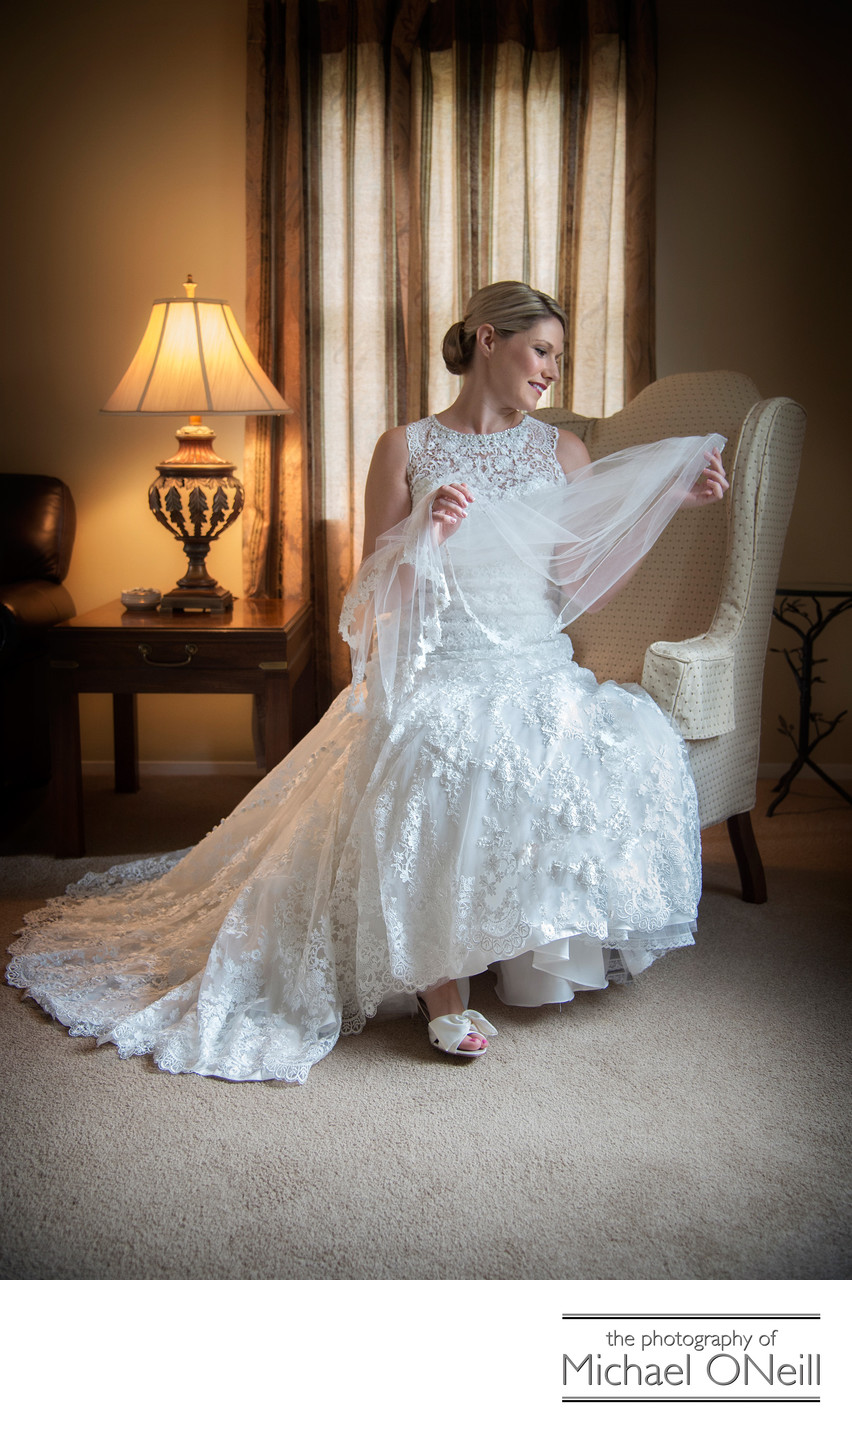 Great Wedding Gown and Bridal Veil Photographs